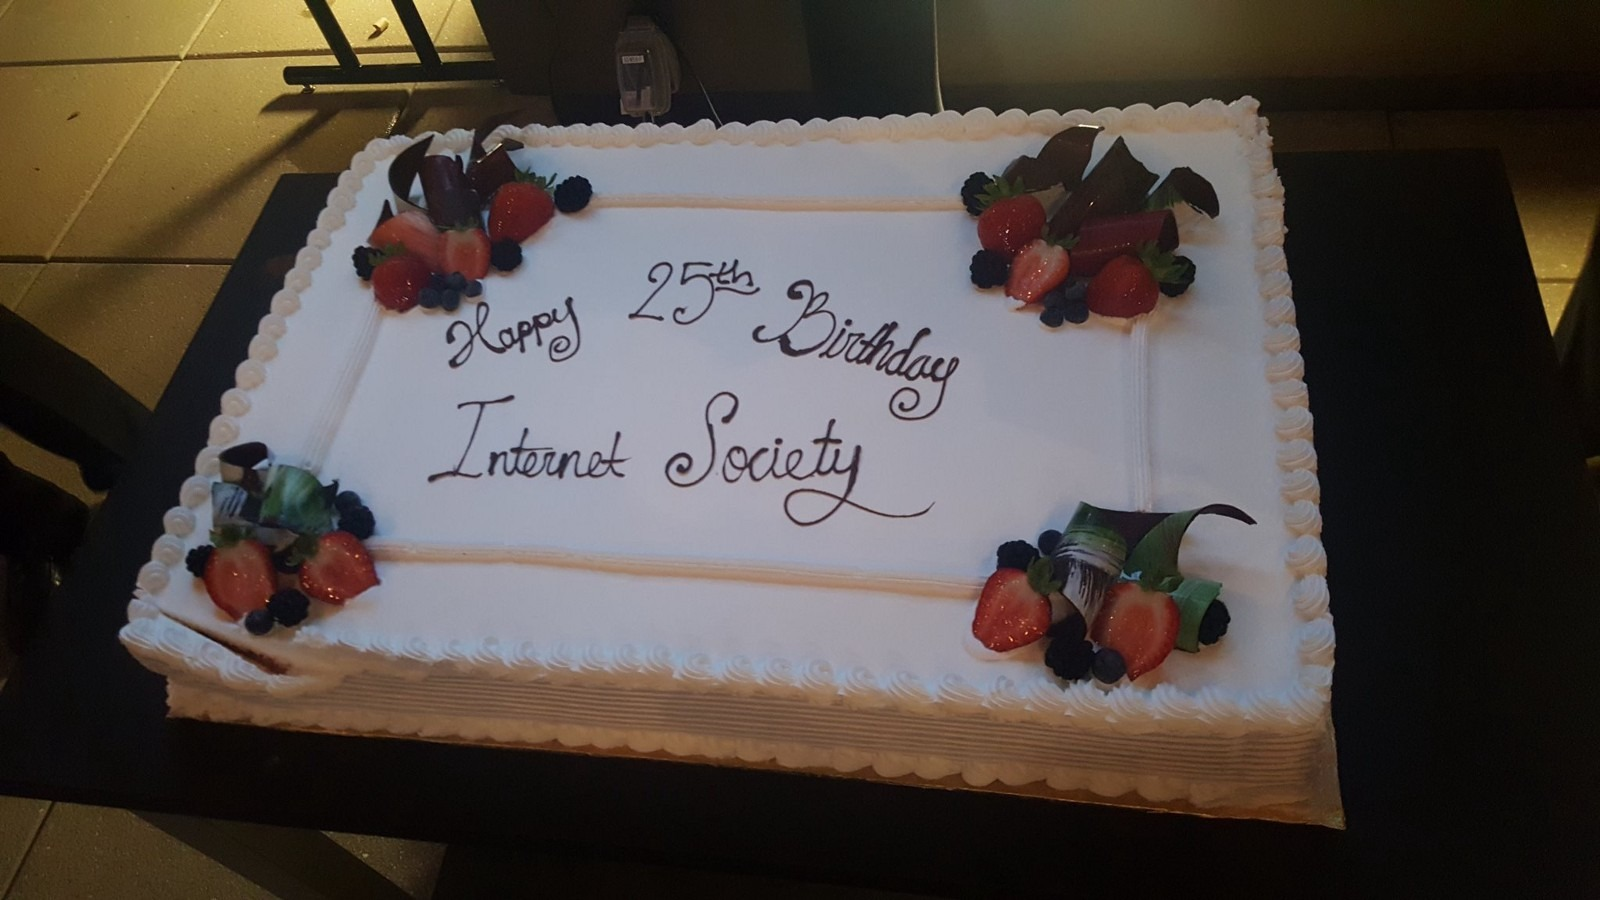 The Internet Society's 25th Anniversary and the Renewal of Commitment Thumbnail